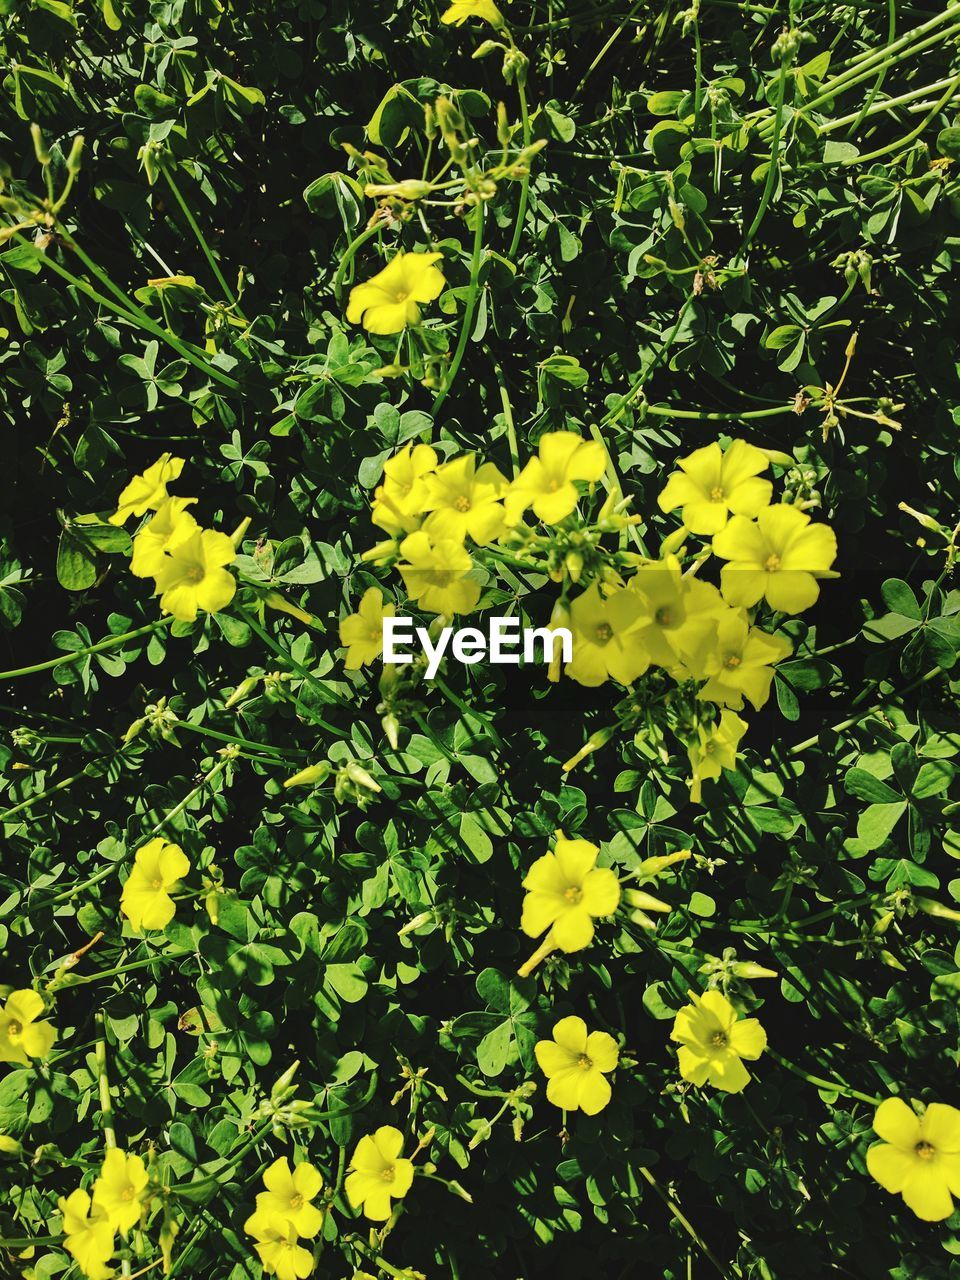 yellow, flower, growth, nature, beauty in nature, plant, freshness, fragility, blossom, petal, outdoors, no people, blooming, day, flower head, close-up